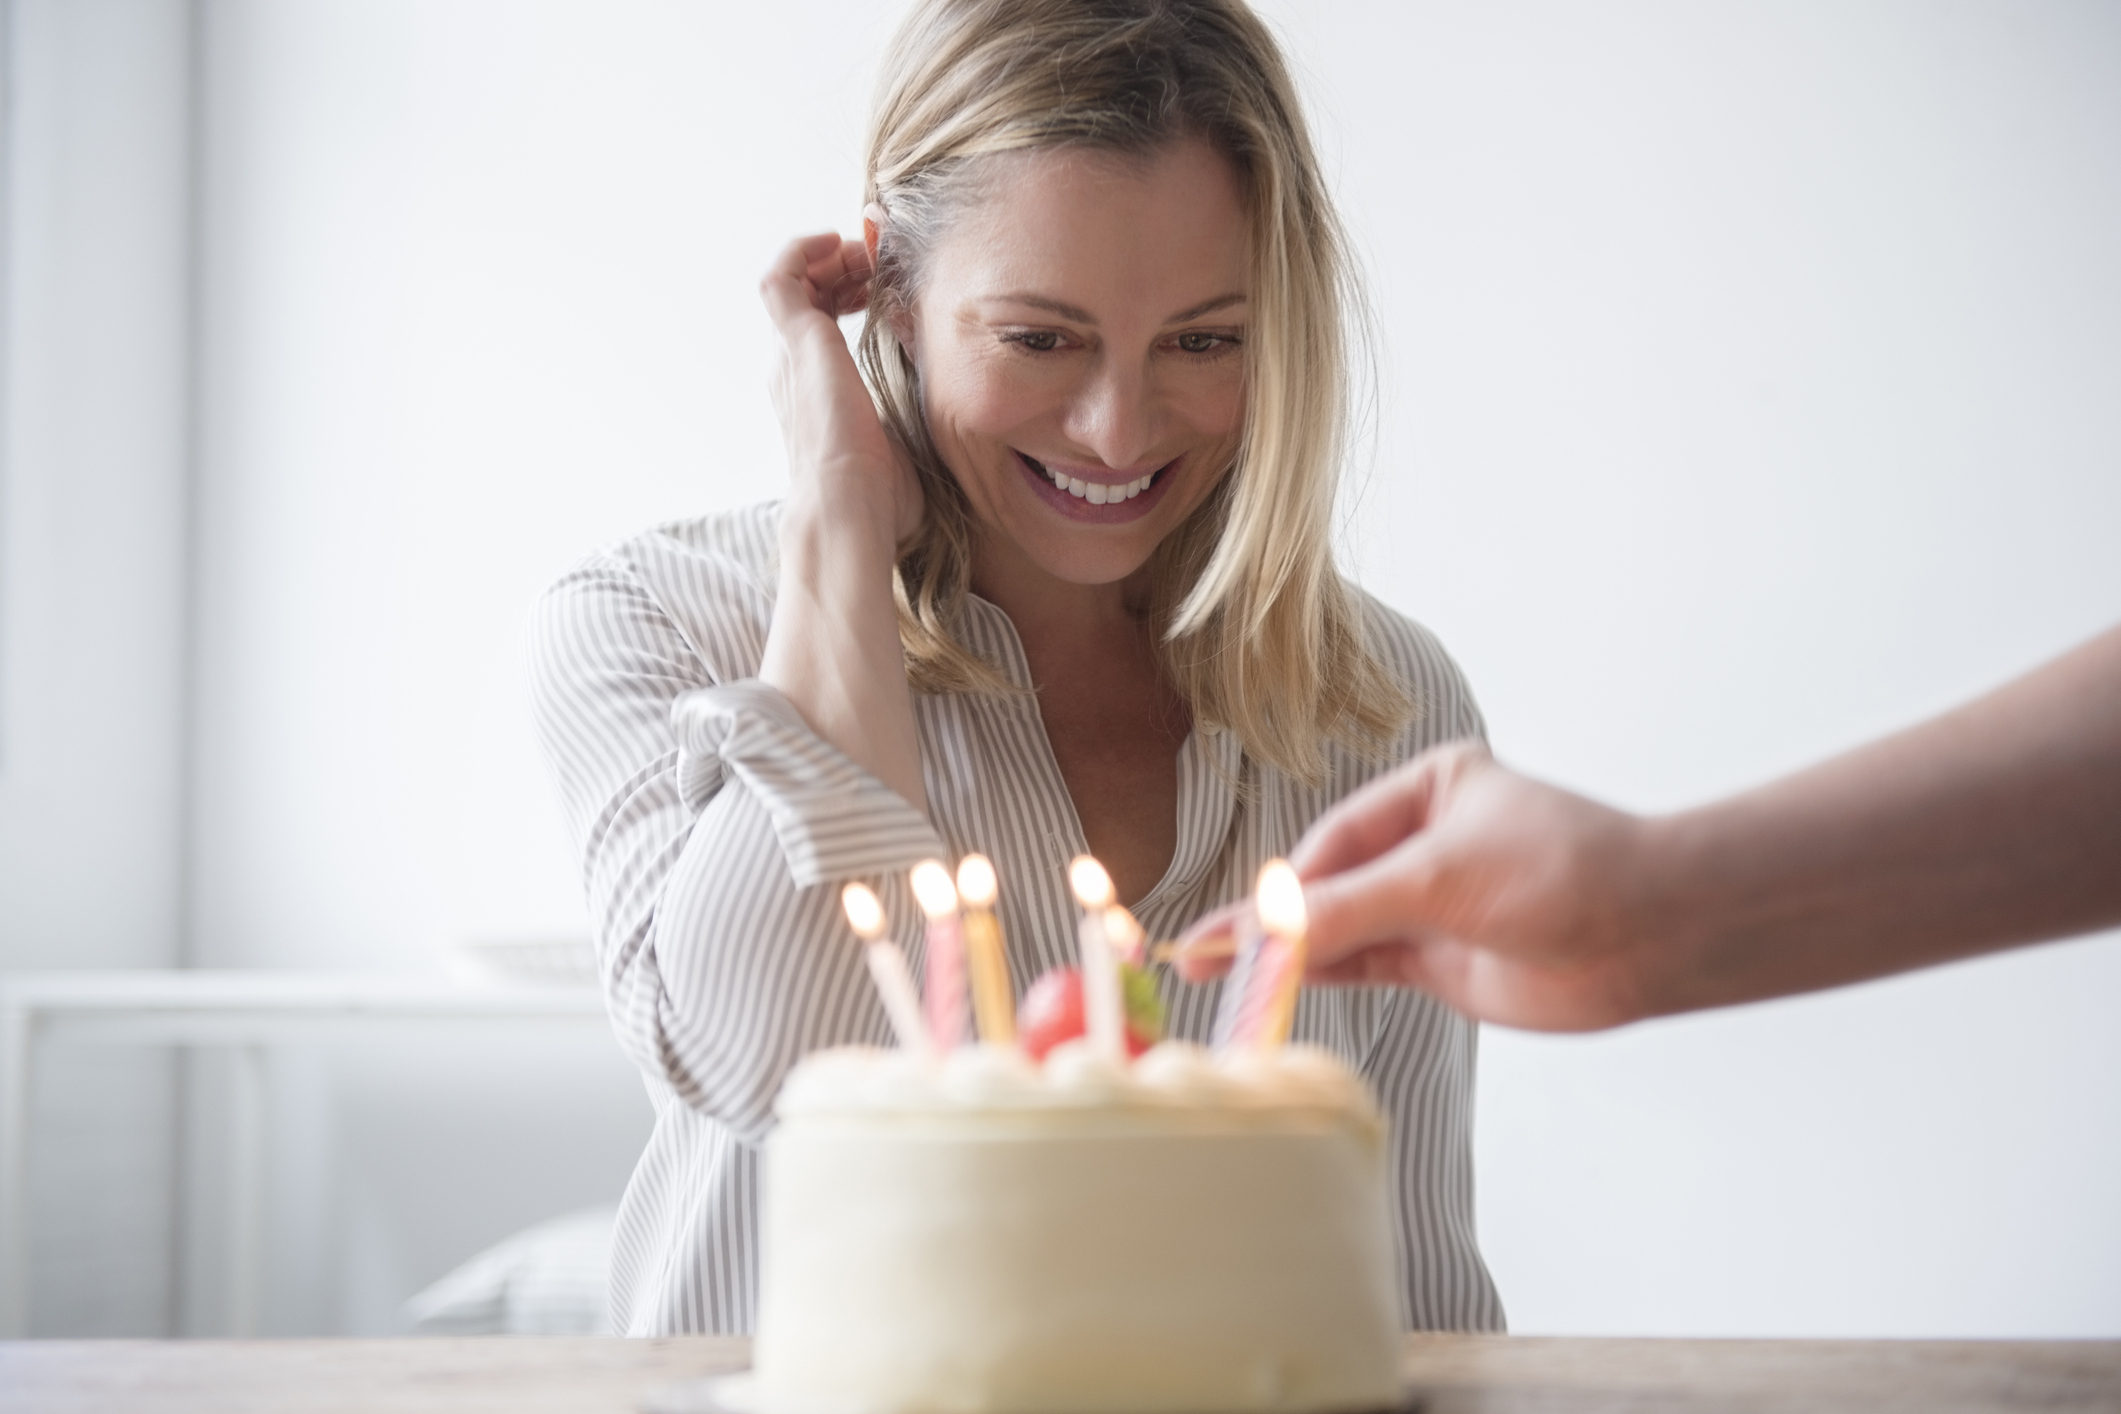 Friend lighting candles on cake as 50th birthday gift idea for woman